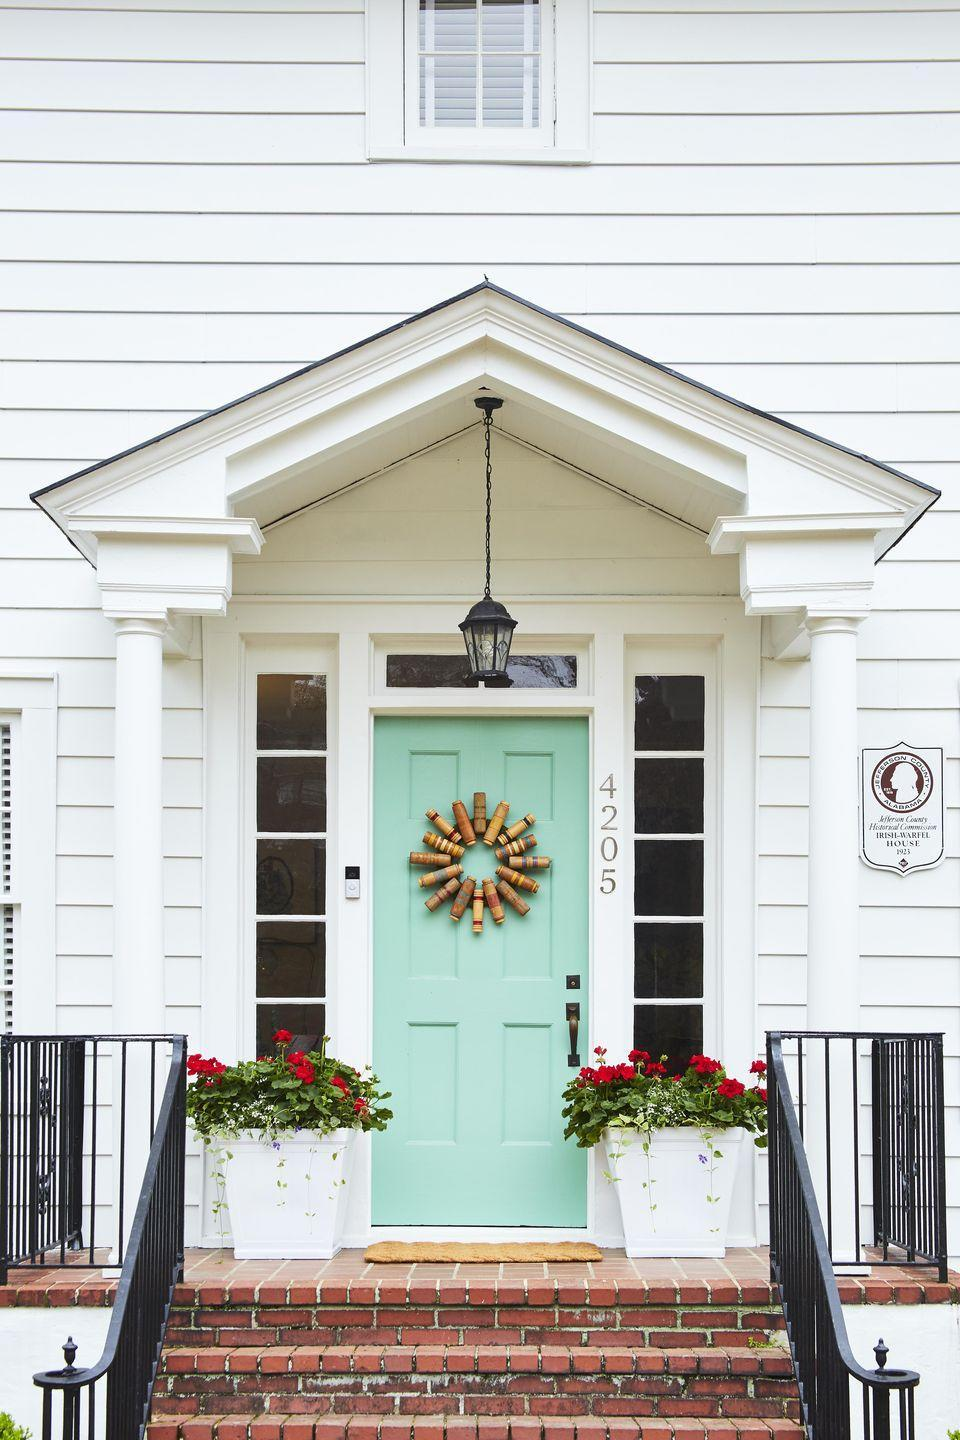 <p>Welcome guests with a spirited wreath made from the heads of croquet mallets. A brightly colored door (here Arsenic by Farrow & Ball) adds to the cheer.<strong><br><br>To make:</strong> Cover a 14-inch biodegradable craft ring with a peel-and-stick moss mat. Remove the handles from about 16 croquet mallets. Hot-glue heads to wreath, offsetting every other one slightly (reserve handles for another DIY). Carefully turn over wreath, and use a nail gun to permanently attach heads.</p>